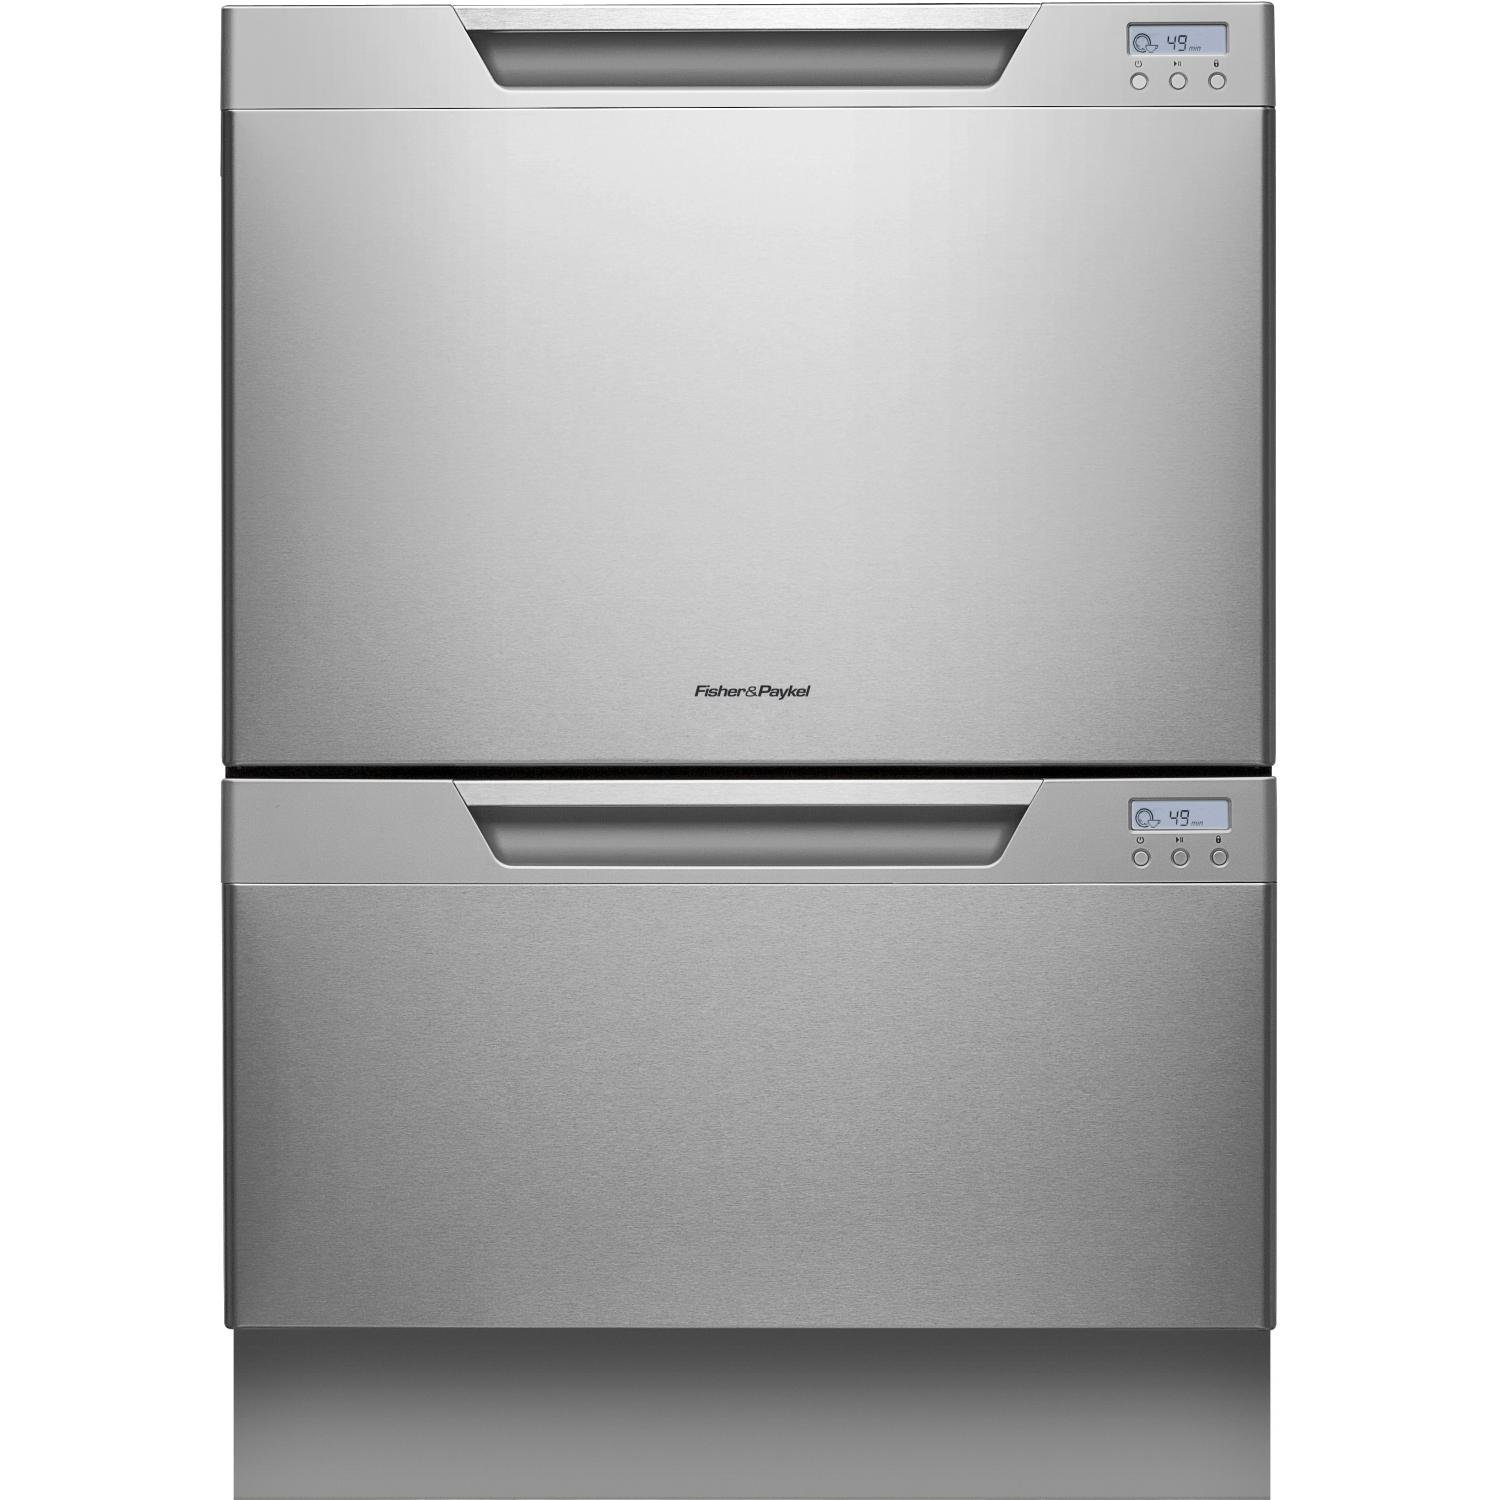 Fisher Paykel DD24SCTX7 review